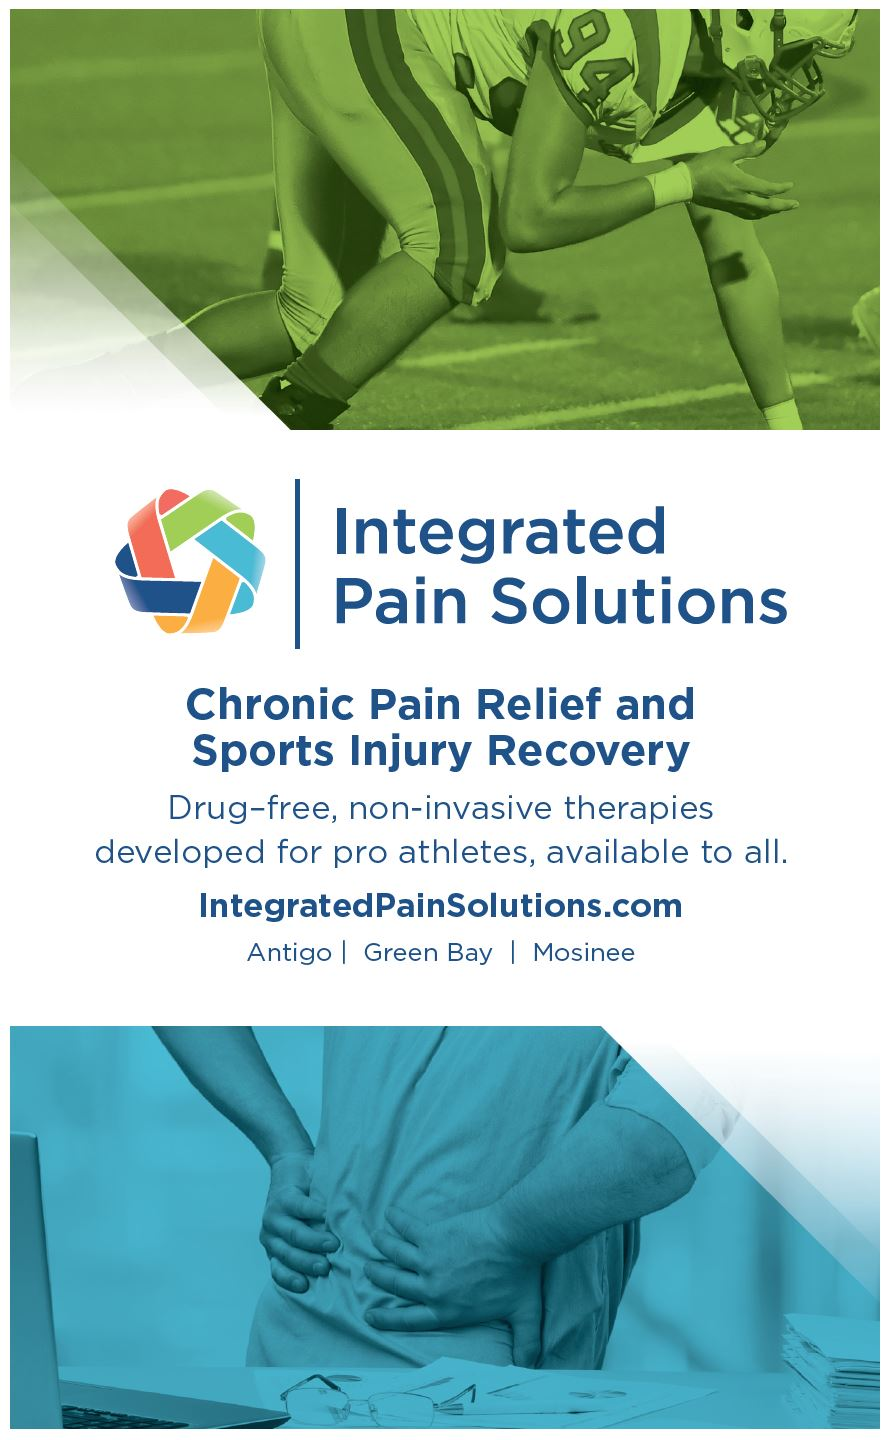 Integrated-Pain-Solutions-SNIP